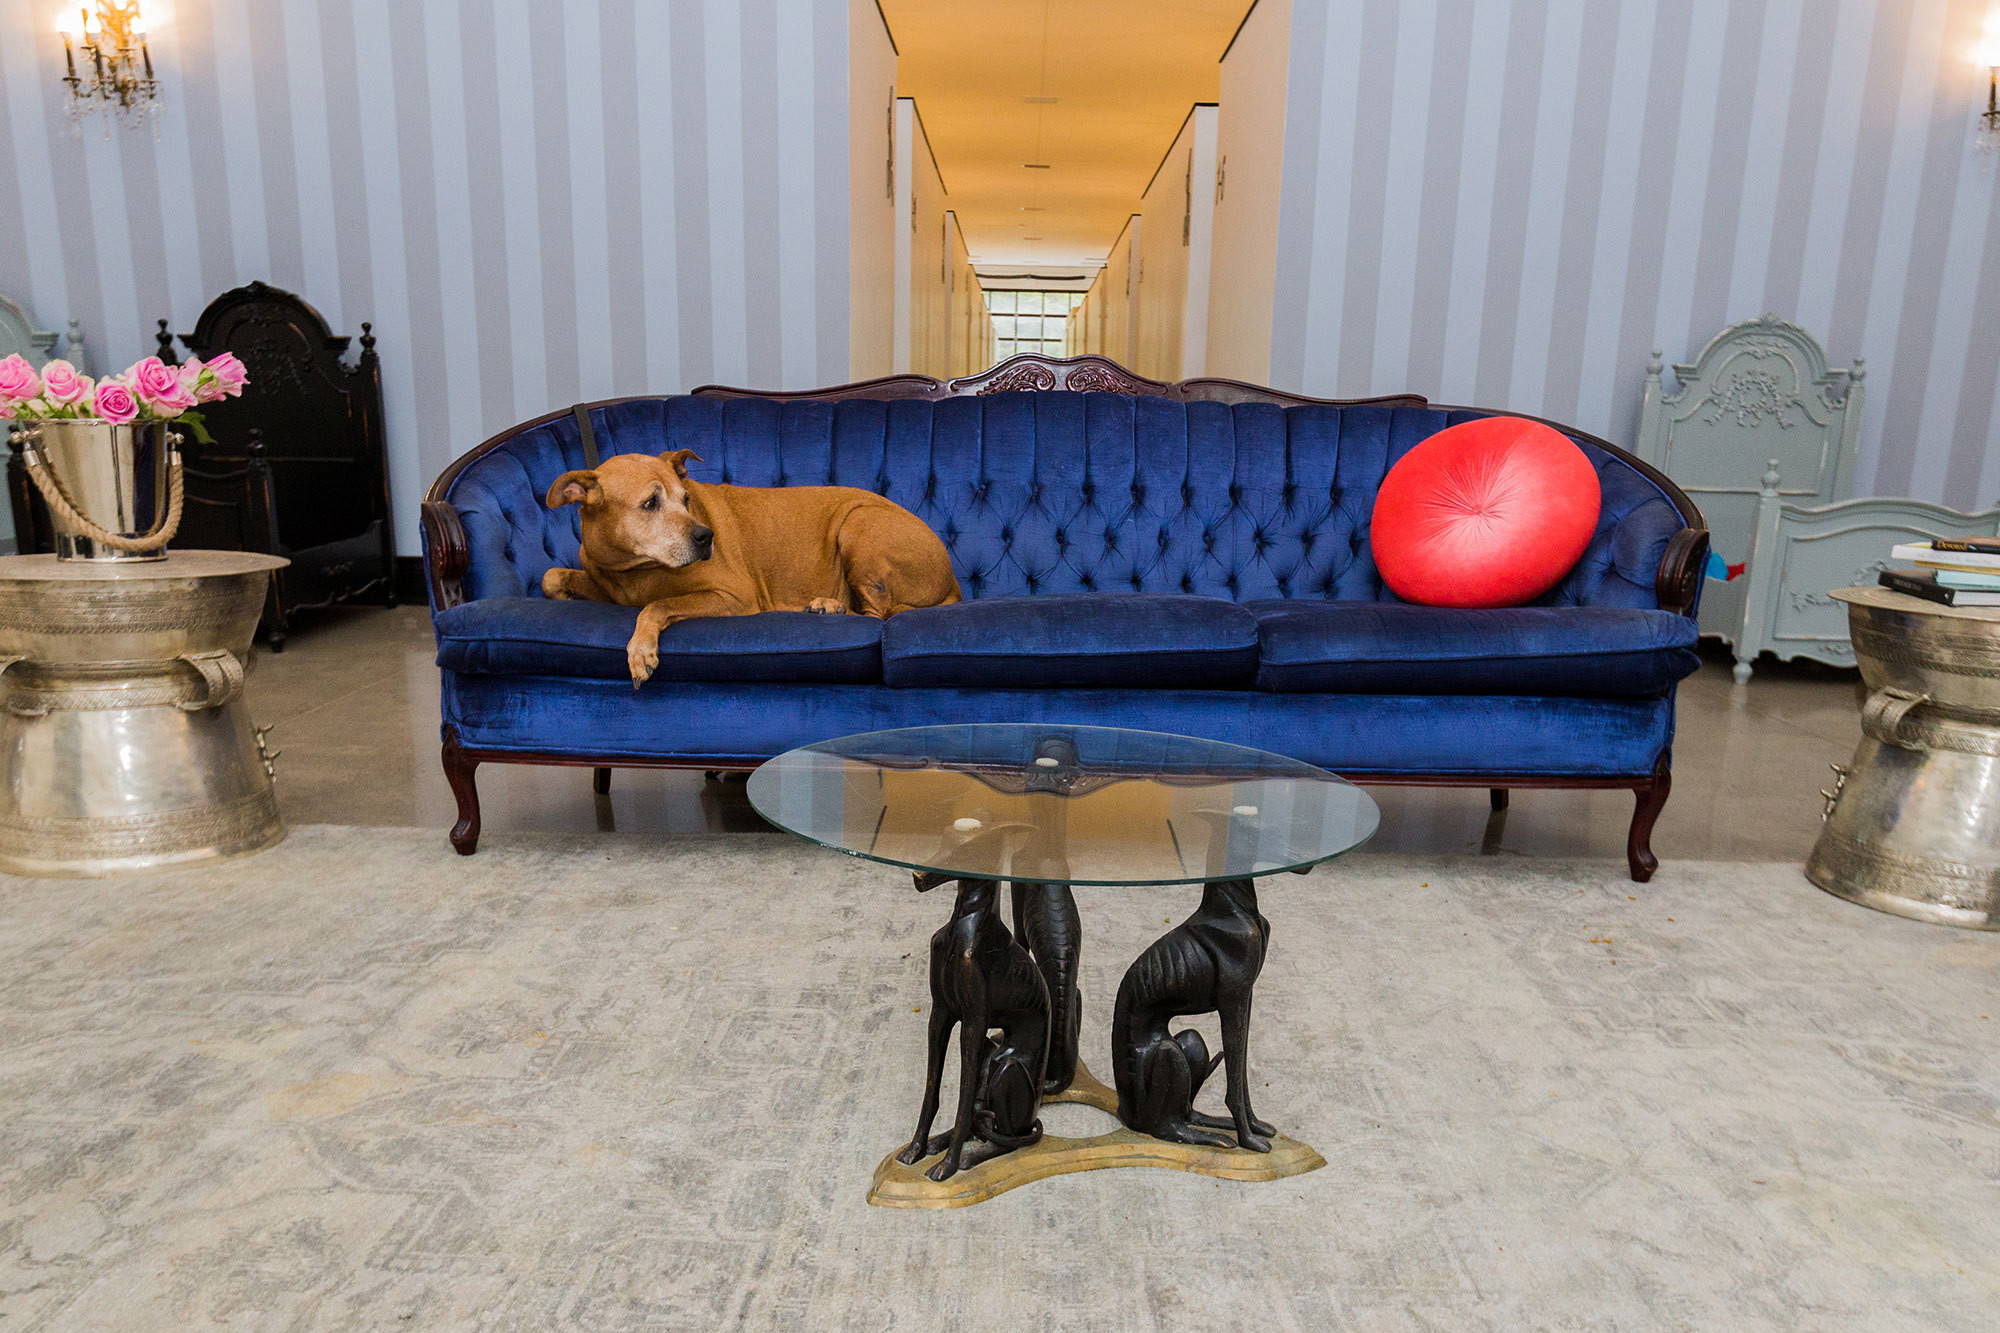 Lady, a senior dog rescued from euthanasia in Miami, lounges on a blue velvet settee at the Dog Tales sanctuary in King City, Ontario. She is currently adoption pending. Photography by Kayla Rocca.